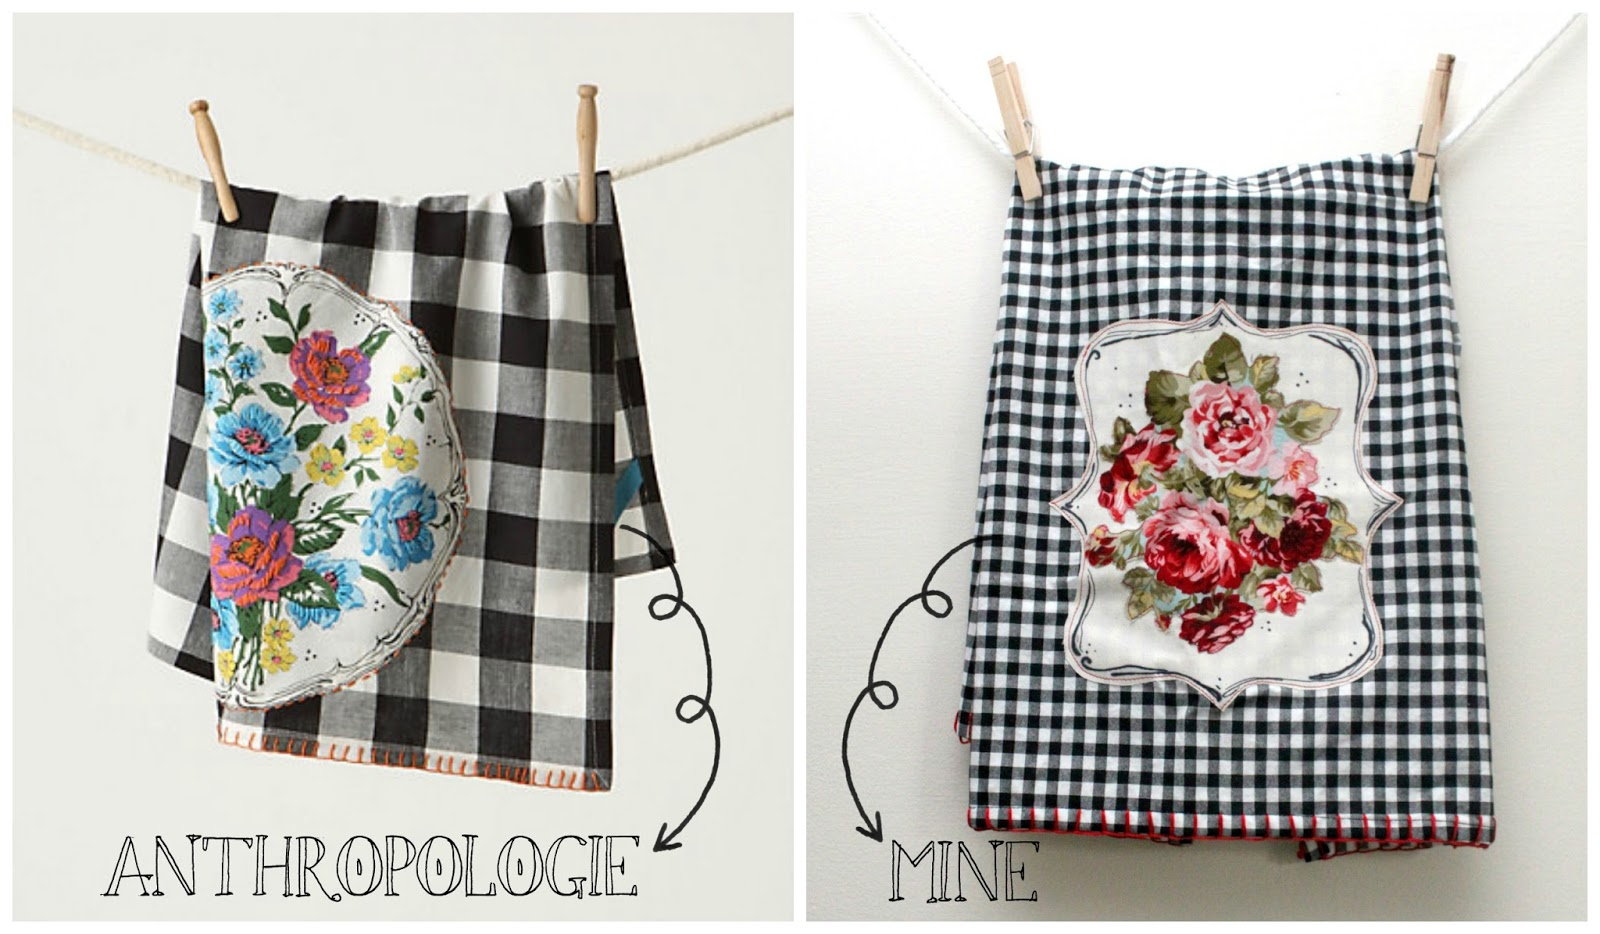 I Found These Adorable Towels On Anthropologie Awhile Ago (they Donu0027t Make  Them Anymore) And Fell In Love With The Gingham And Bold Floral Print, ...